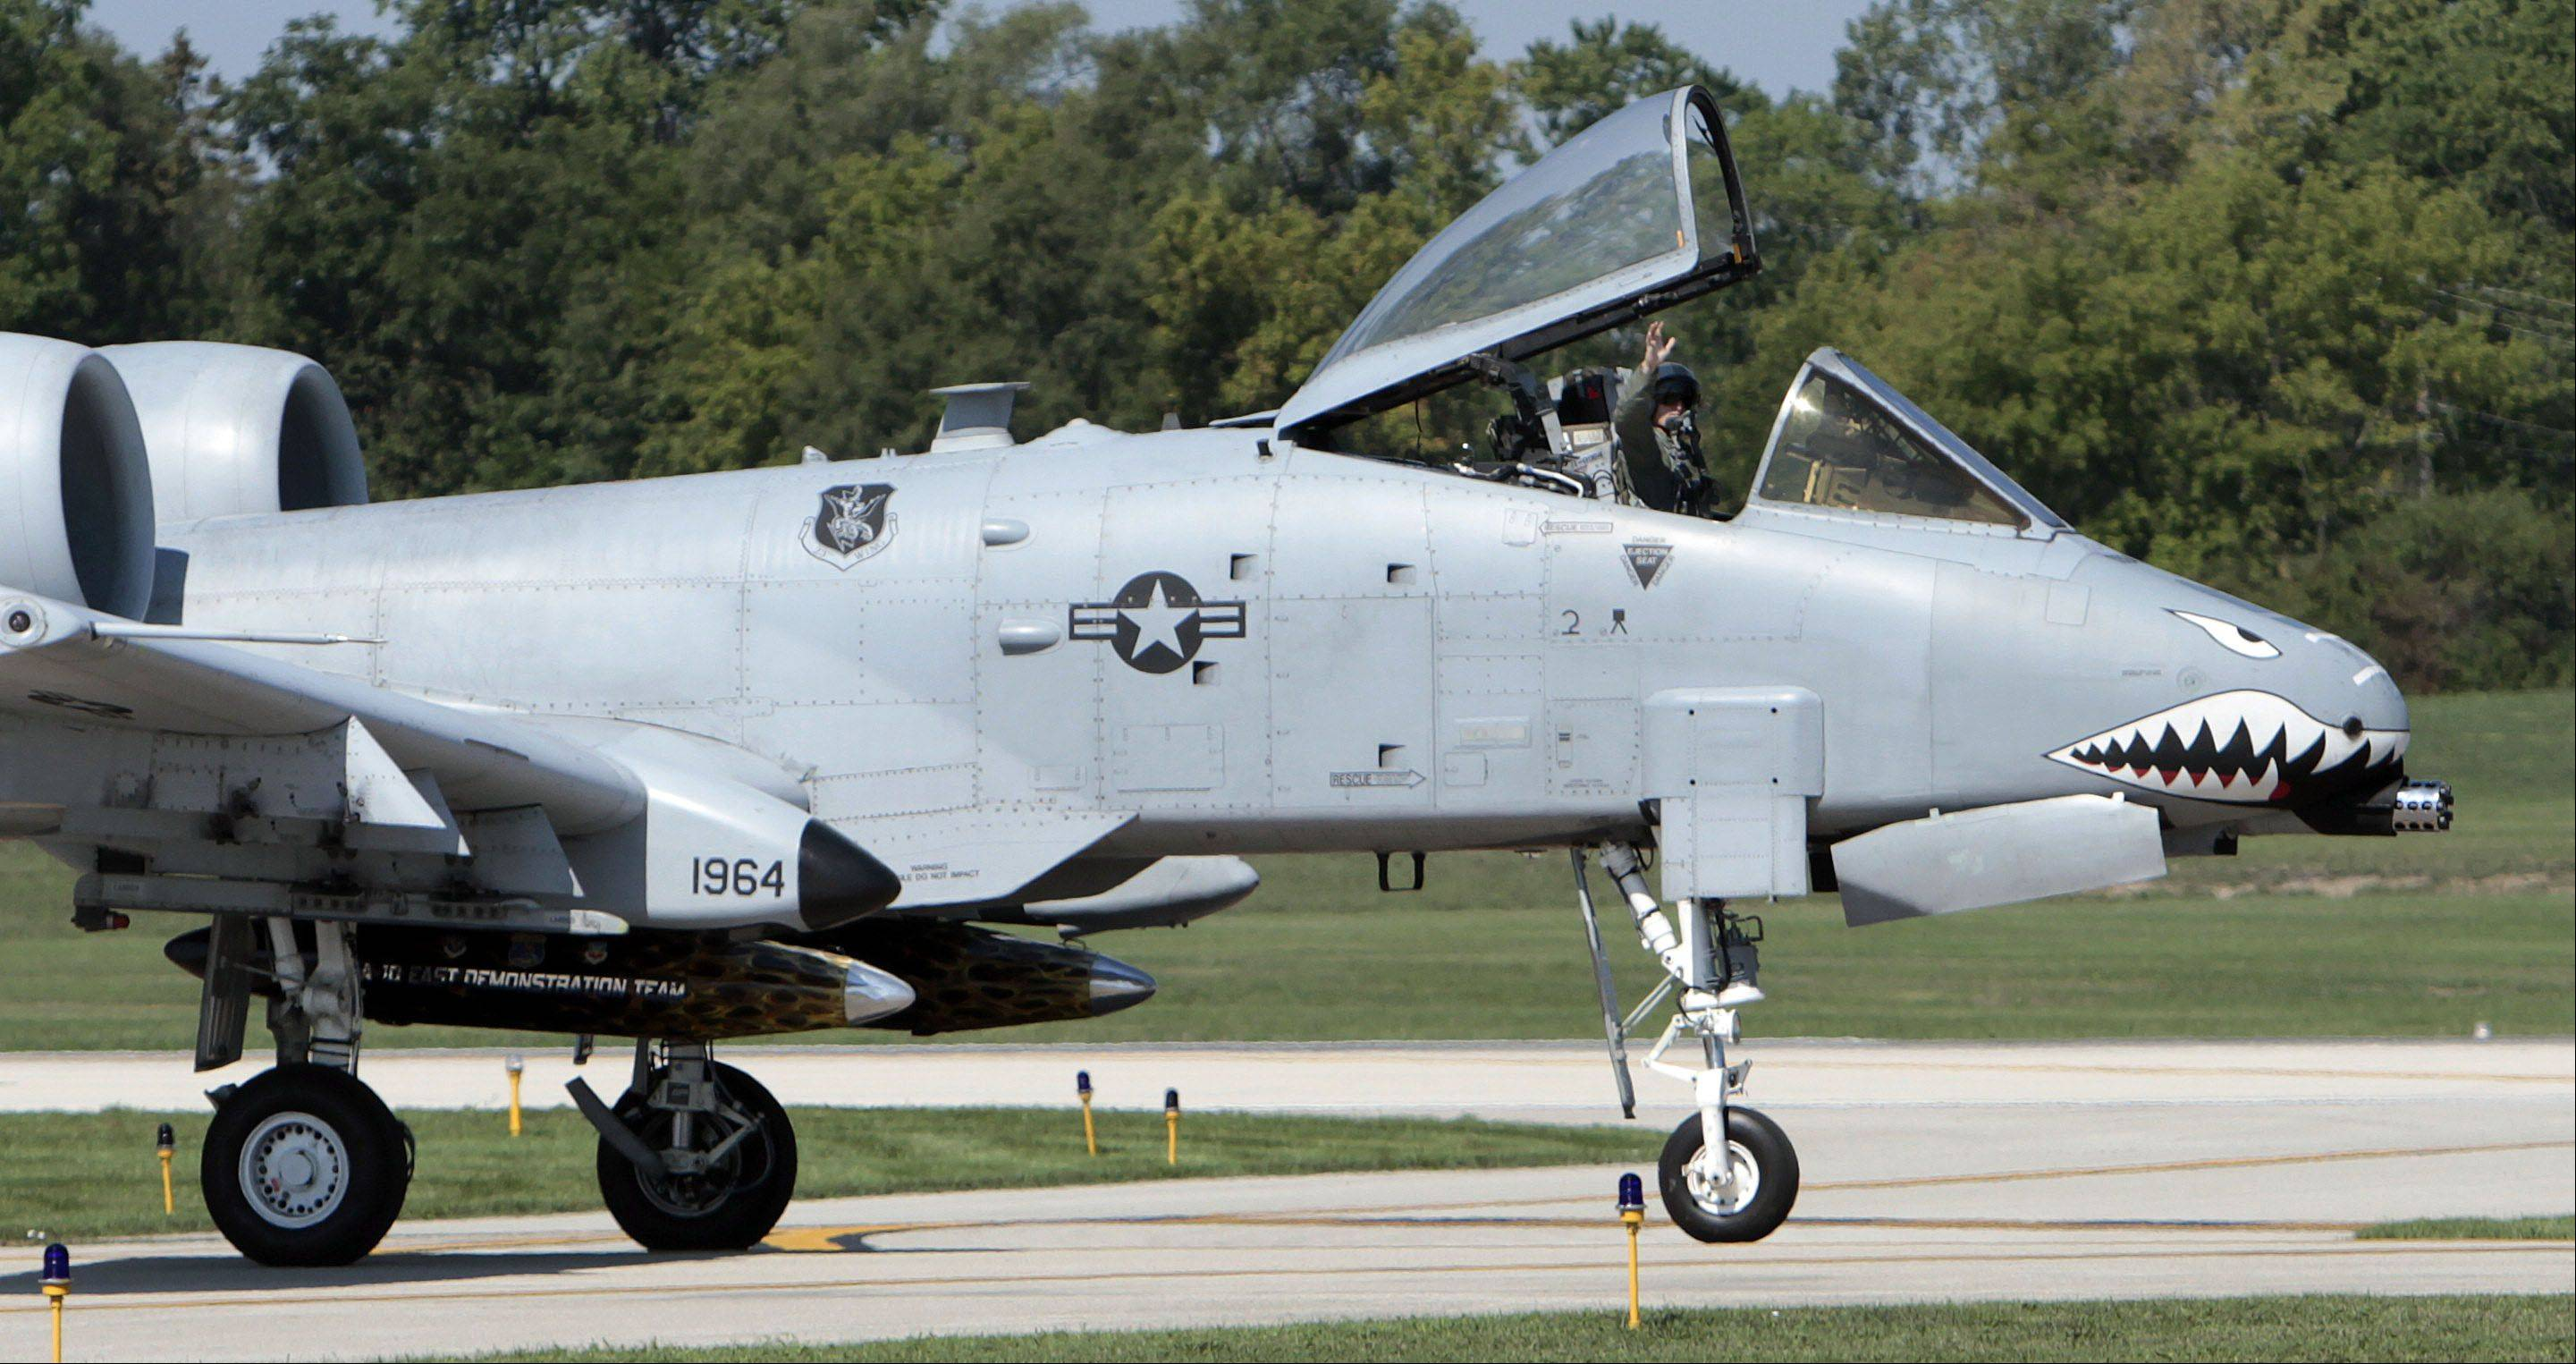 Libertyville native and Air Force Capt. Russell Campbell waves to family and friends after landing his A-10 Thunderbolt II at Waukegan Municipal Airport for the 2012 Wings of Waukegan air show Saturday.